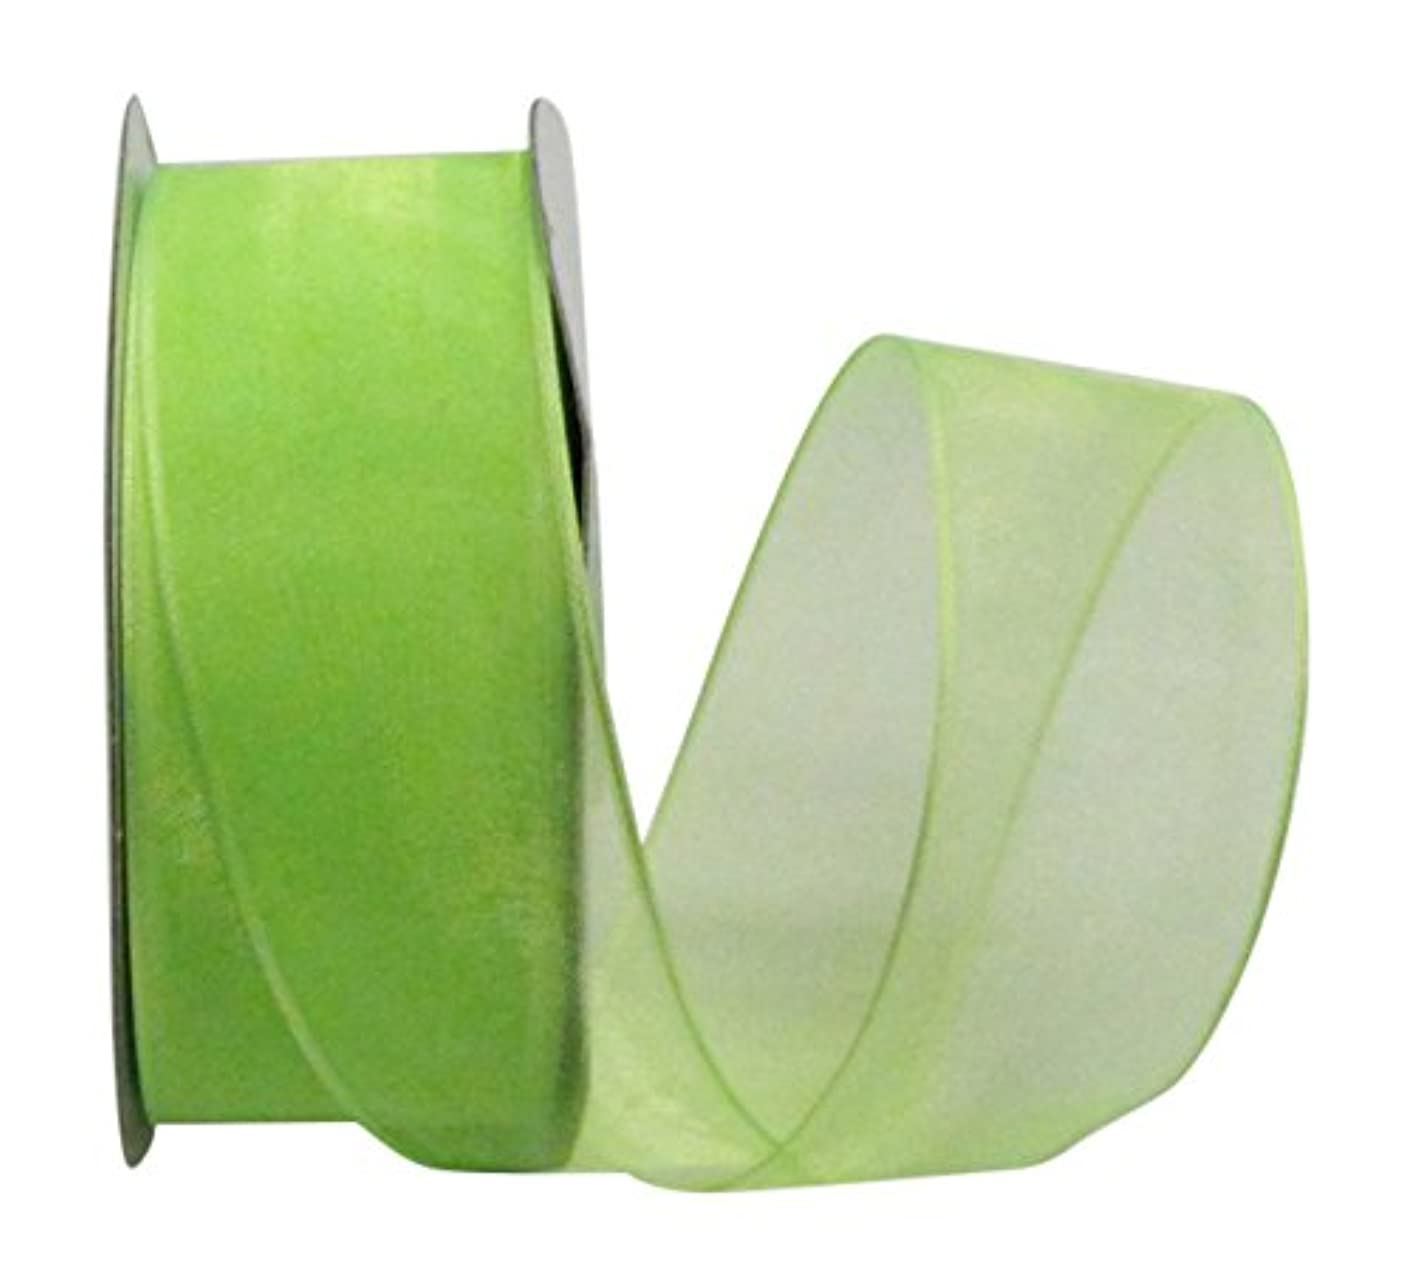 Ribbon Bazaar Wired Sheer Organza 1-1/2 inch Apple Green 25 Yards Ribbon